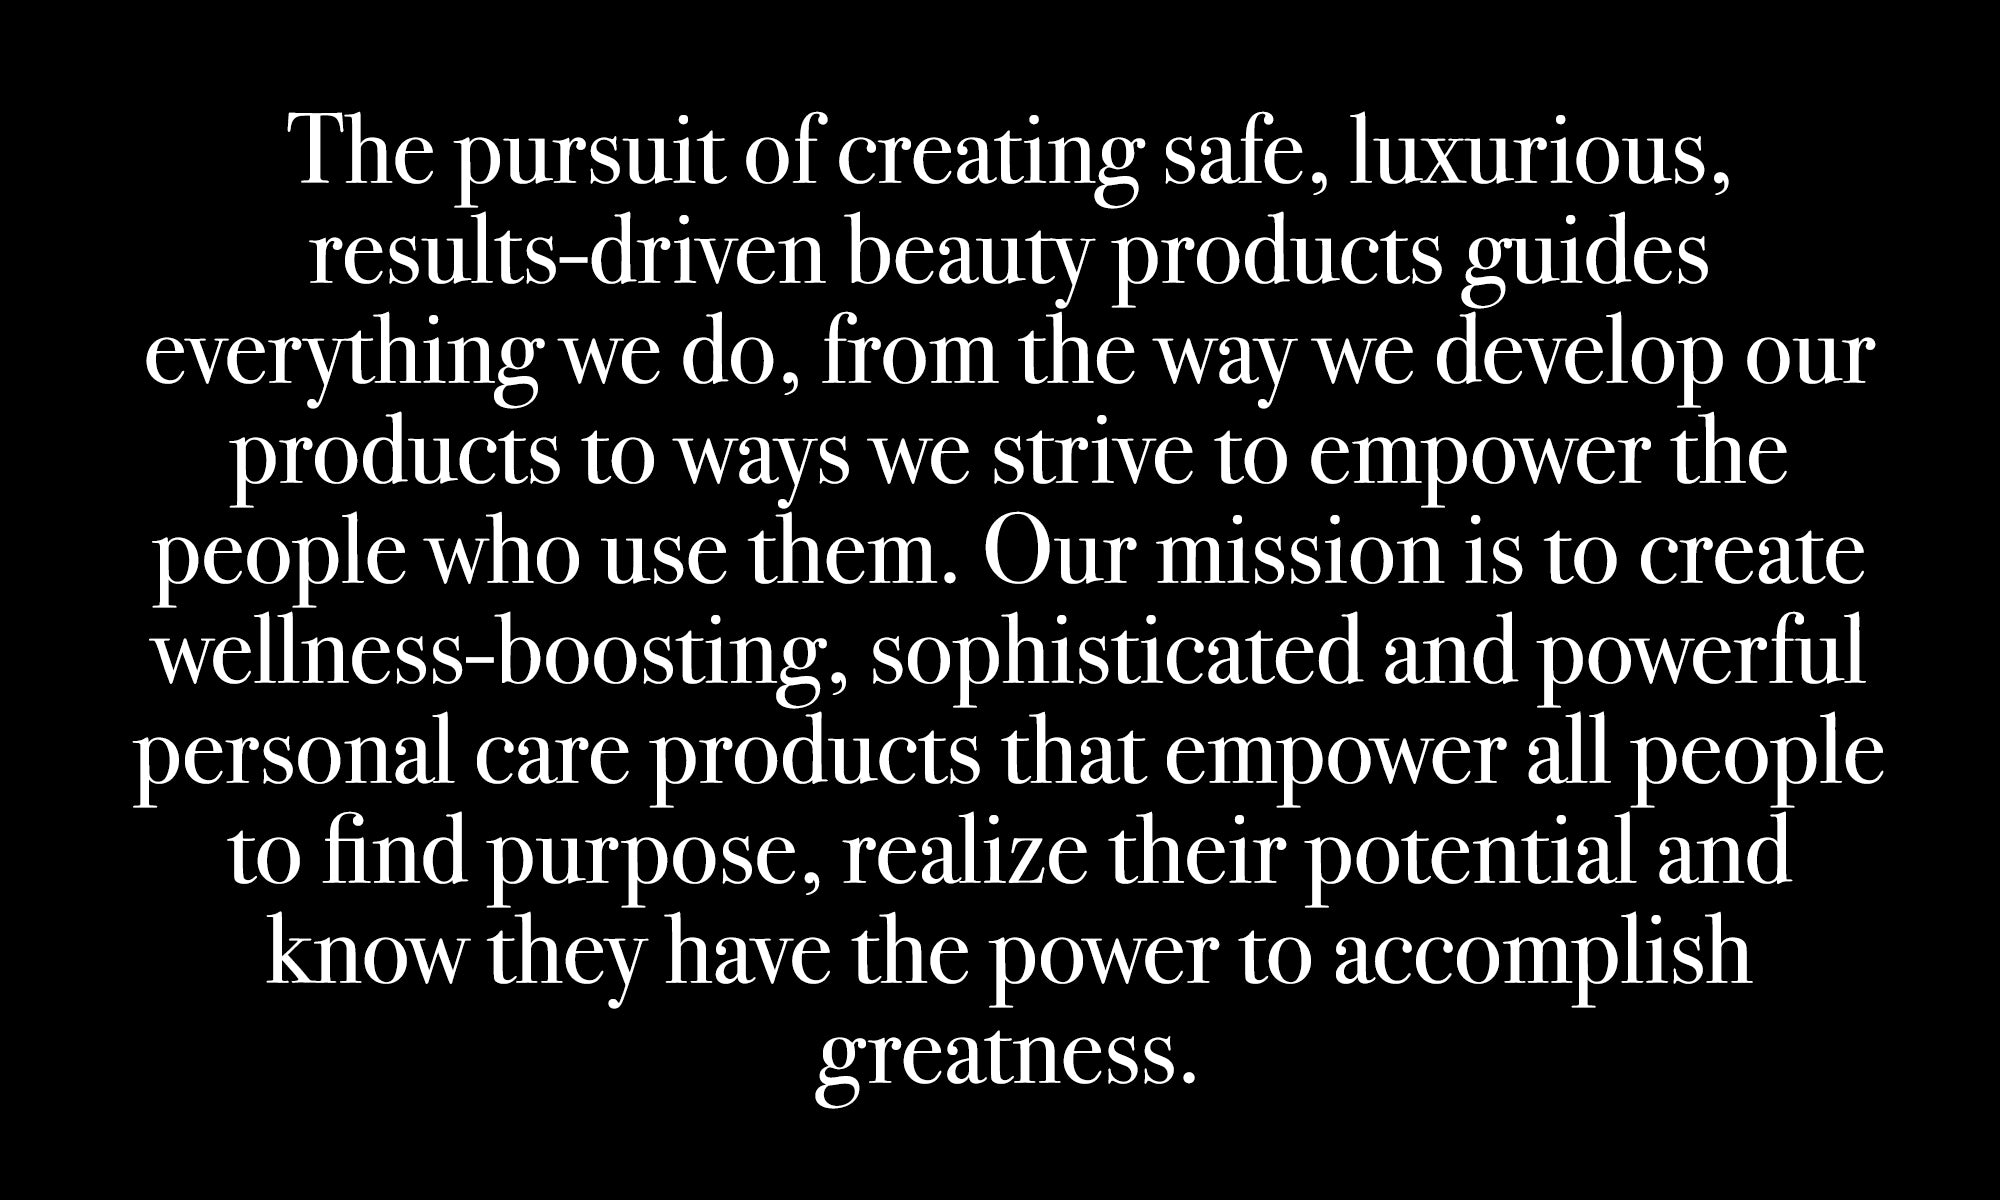 The pursuit of creating safe, luxurious, results-driven beauty products guides everything we do, from the way we develop our products to ways we strive to empower the people who use them. Our mission is to create wellness-boosting, sophisticated and powerful personal care products that empower all people to find purpose, realize their potential and know they have the power to accomplish greatness.